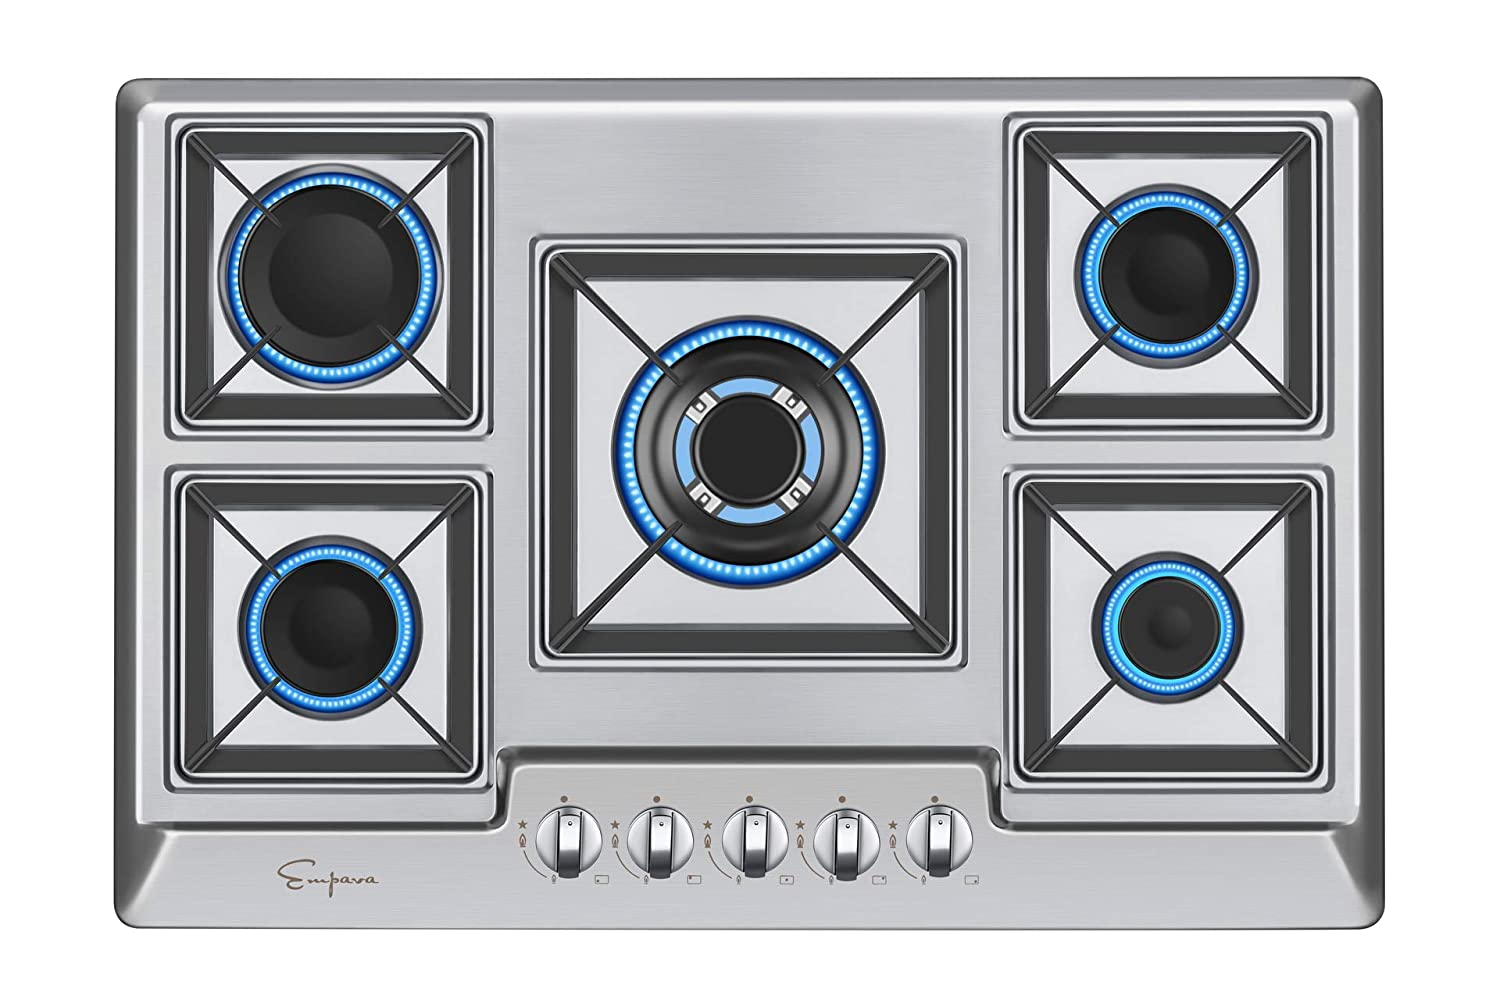 Empava 30XGC0A2 30 Inch Stainless Steel Gas Professional 5 Italy Sabaf Burners Stove Top Certified with Thermocouple Protection Cooktops, Silver